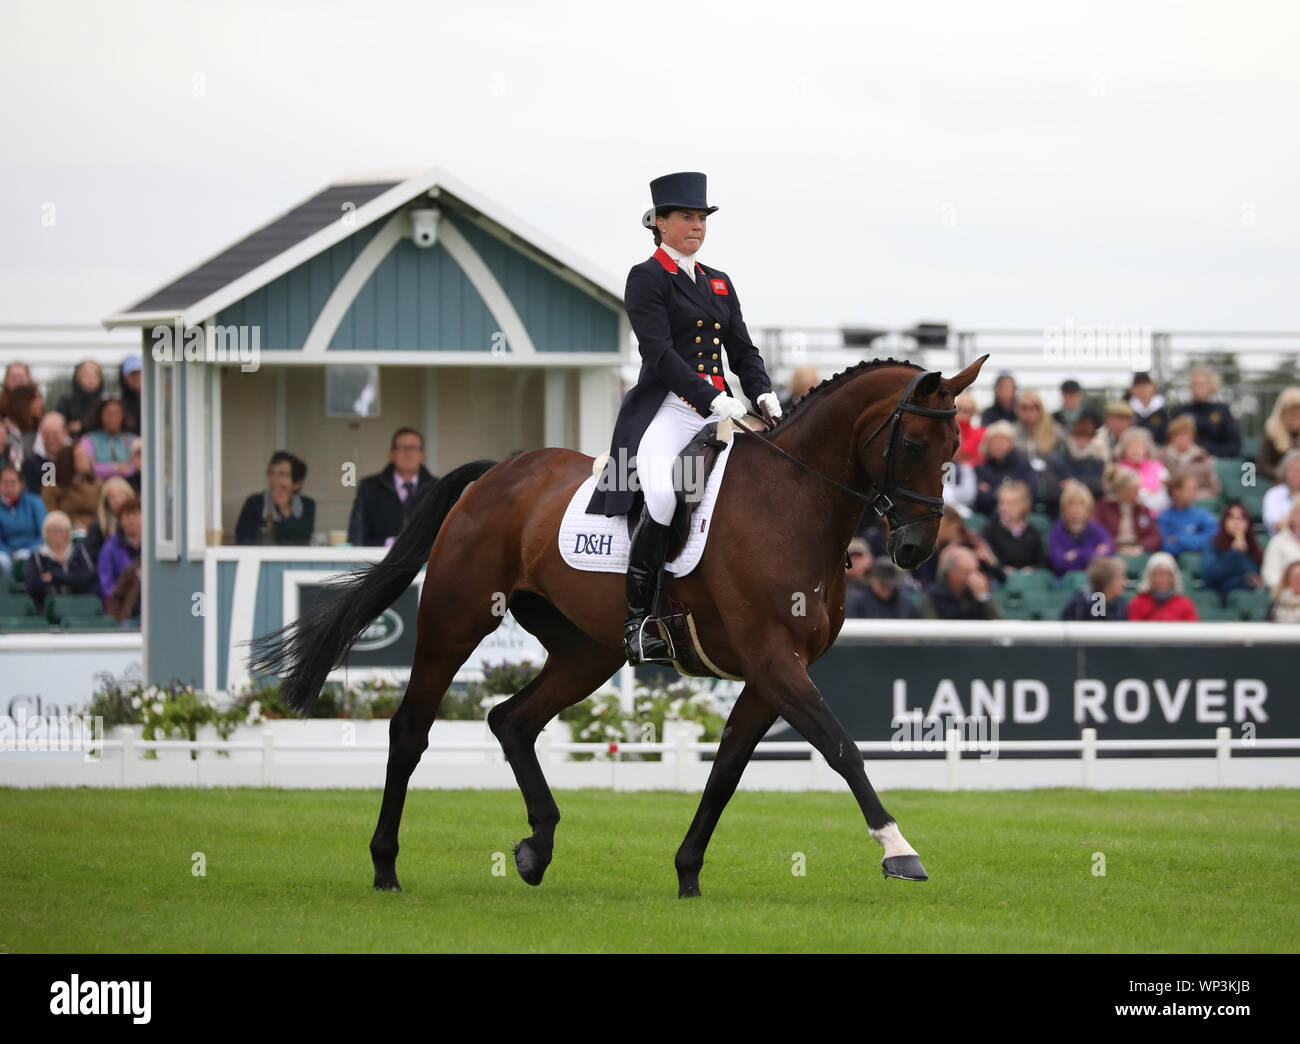 Stamford, Lincolnshire, UK. 06th Sep, 2019. Piggy French on Vanir Kamira during the dresage at The Land Rover Burghley Horse Trials, Stamford, Lincolnshire, on September 6, 2019. Credit: Paul Marriott/Alamy Live News Stock Photo